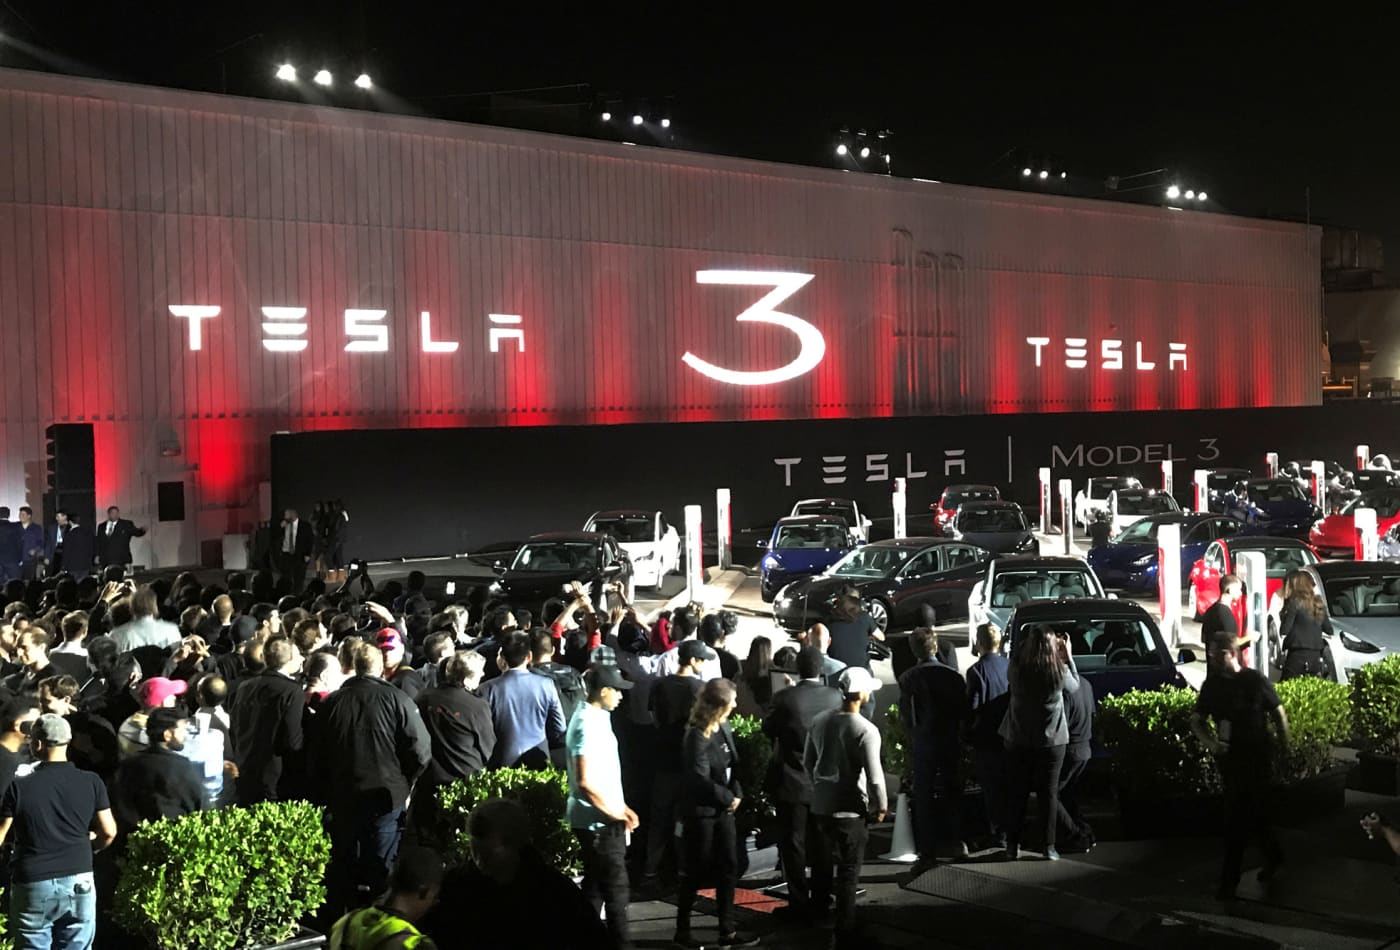 Tesla battery production is the real bottleneck, not Model 3 production, analyst says